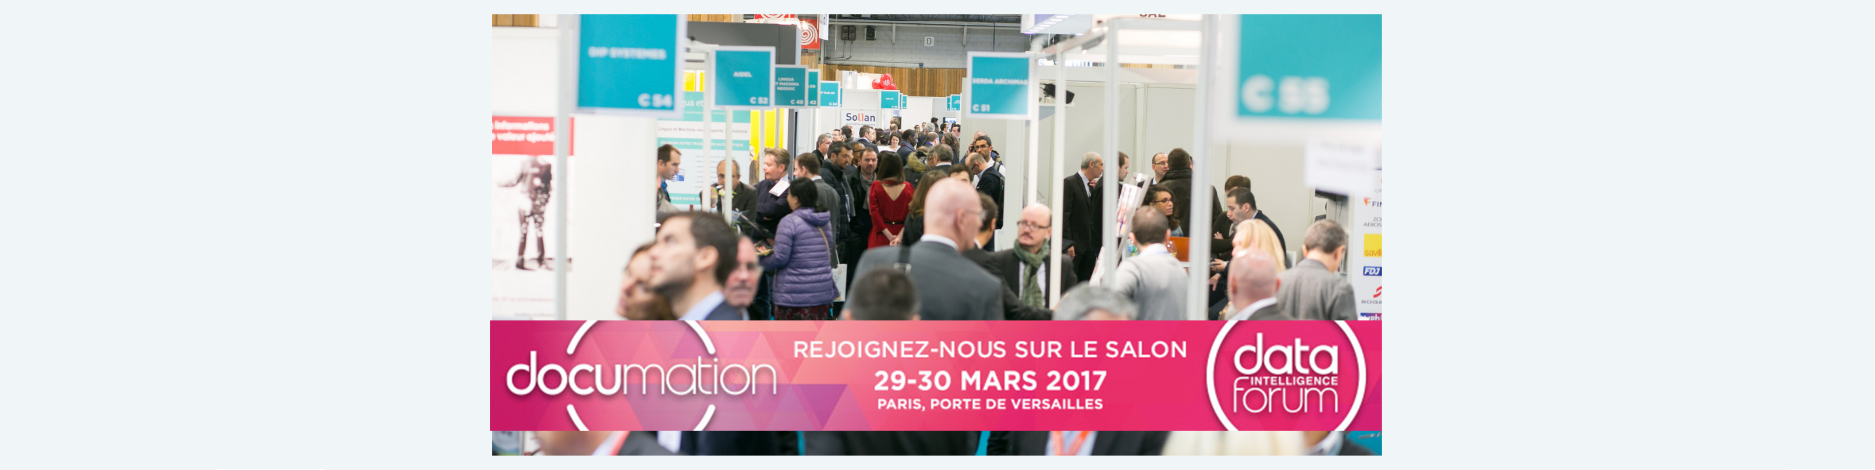 Salon Documation